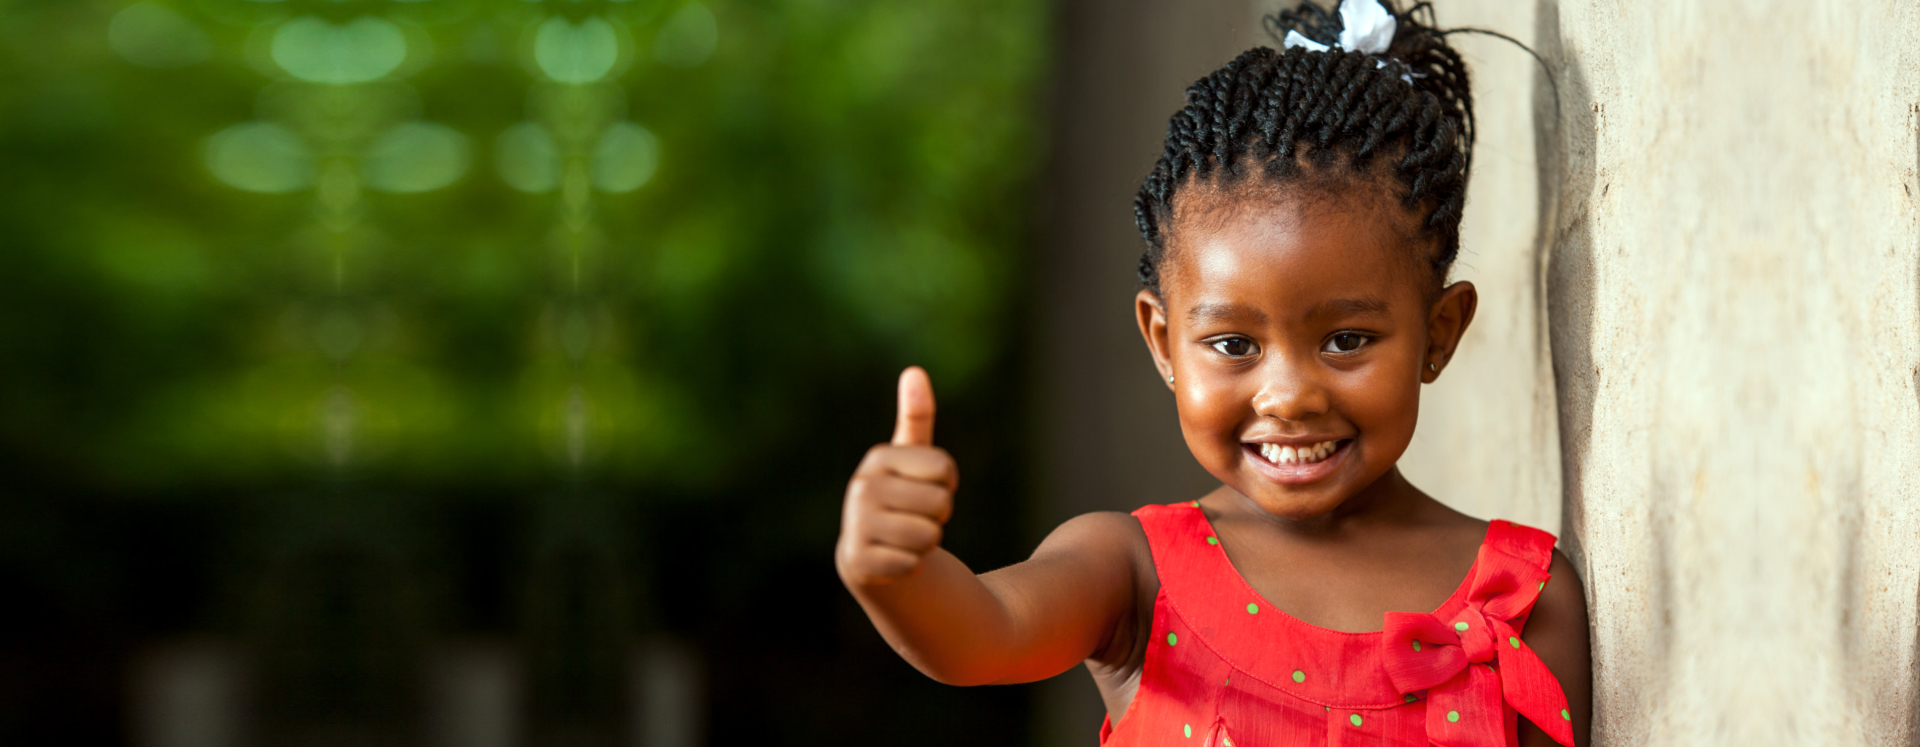 Portrait of happy little african girl doing thumbs up sign